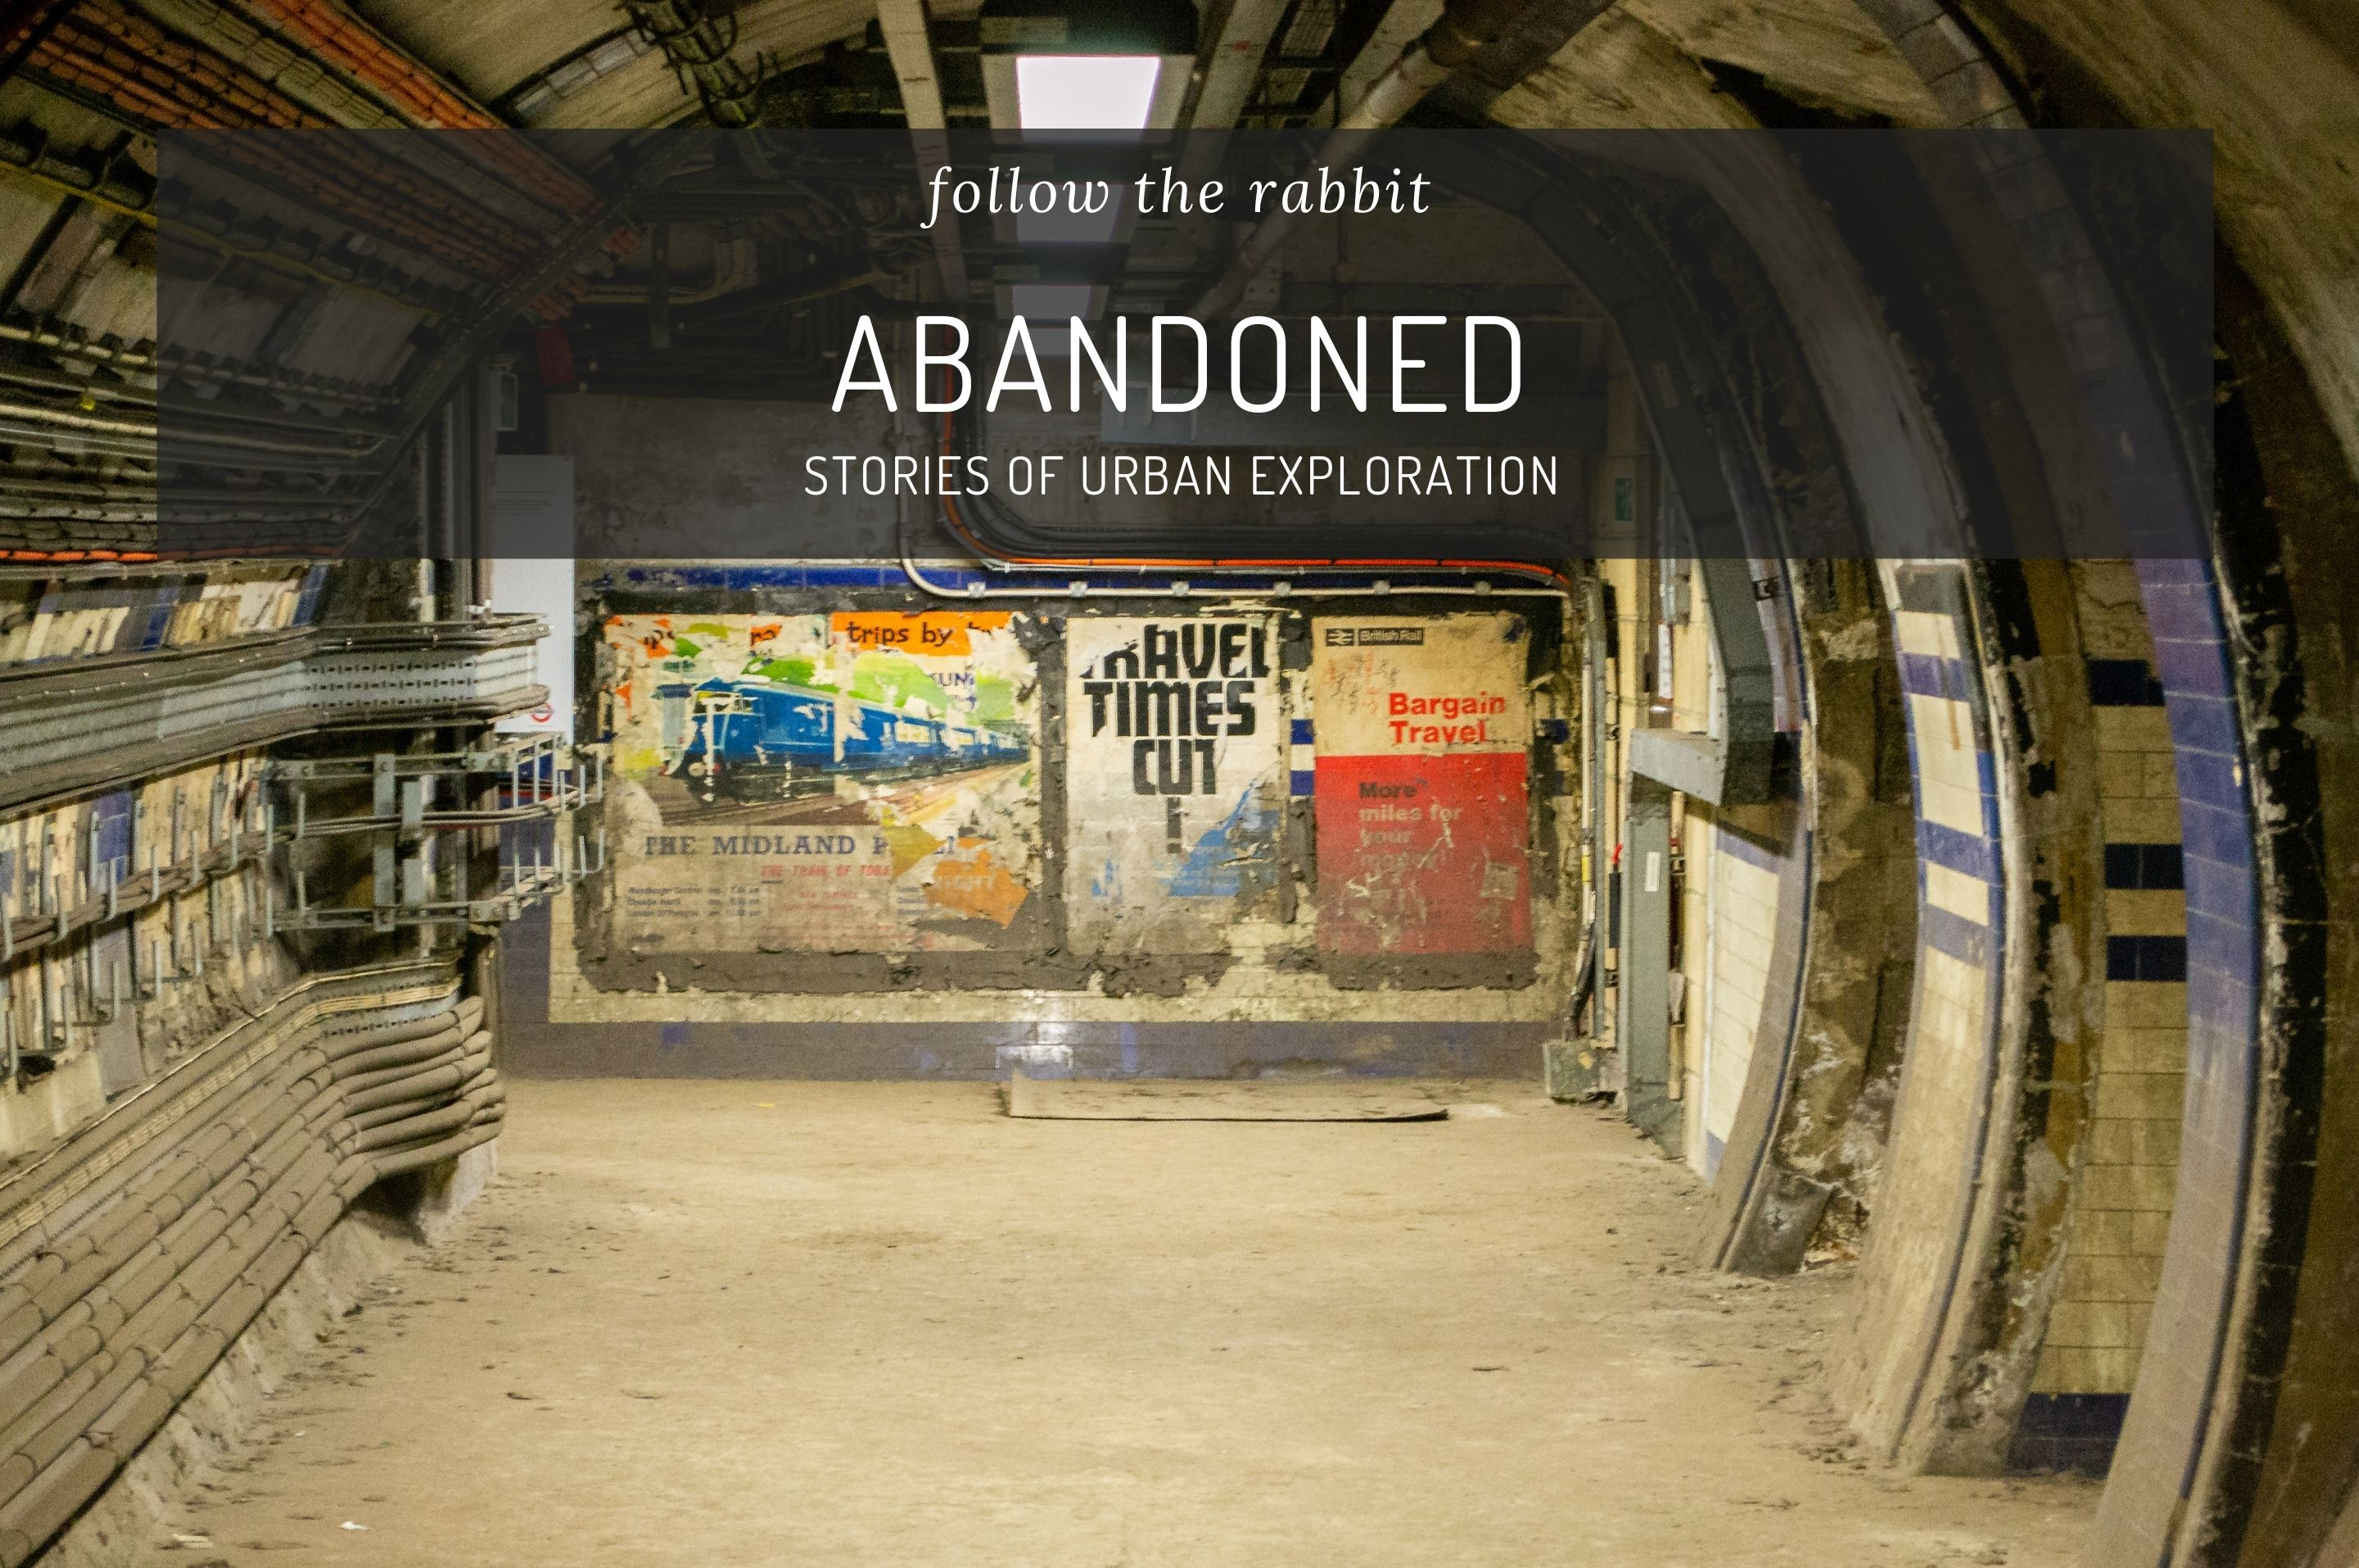 Abandoned Stories of Urban Exploration